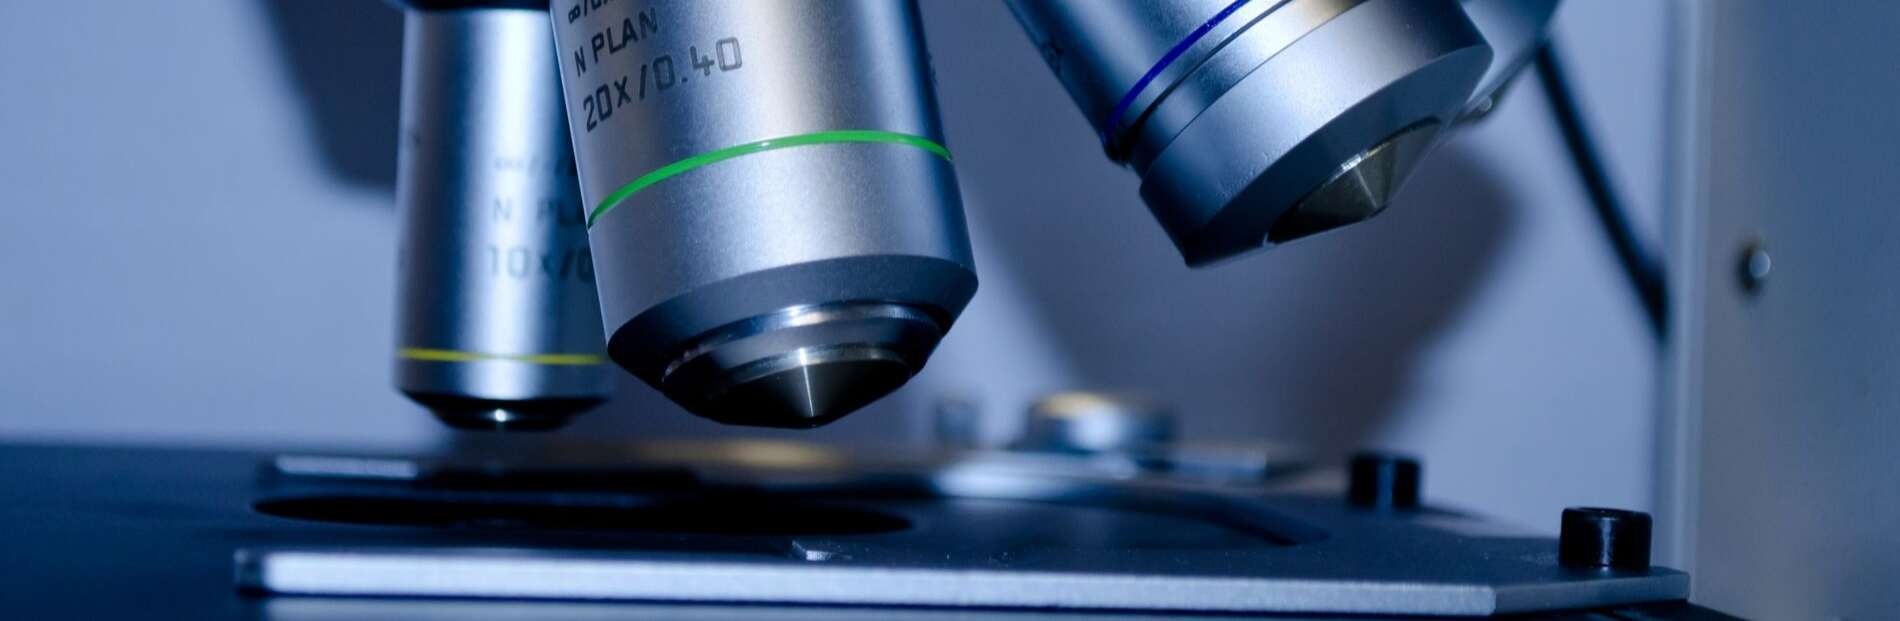 ivf clinical research trial fast track